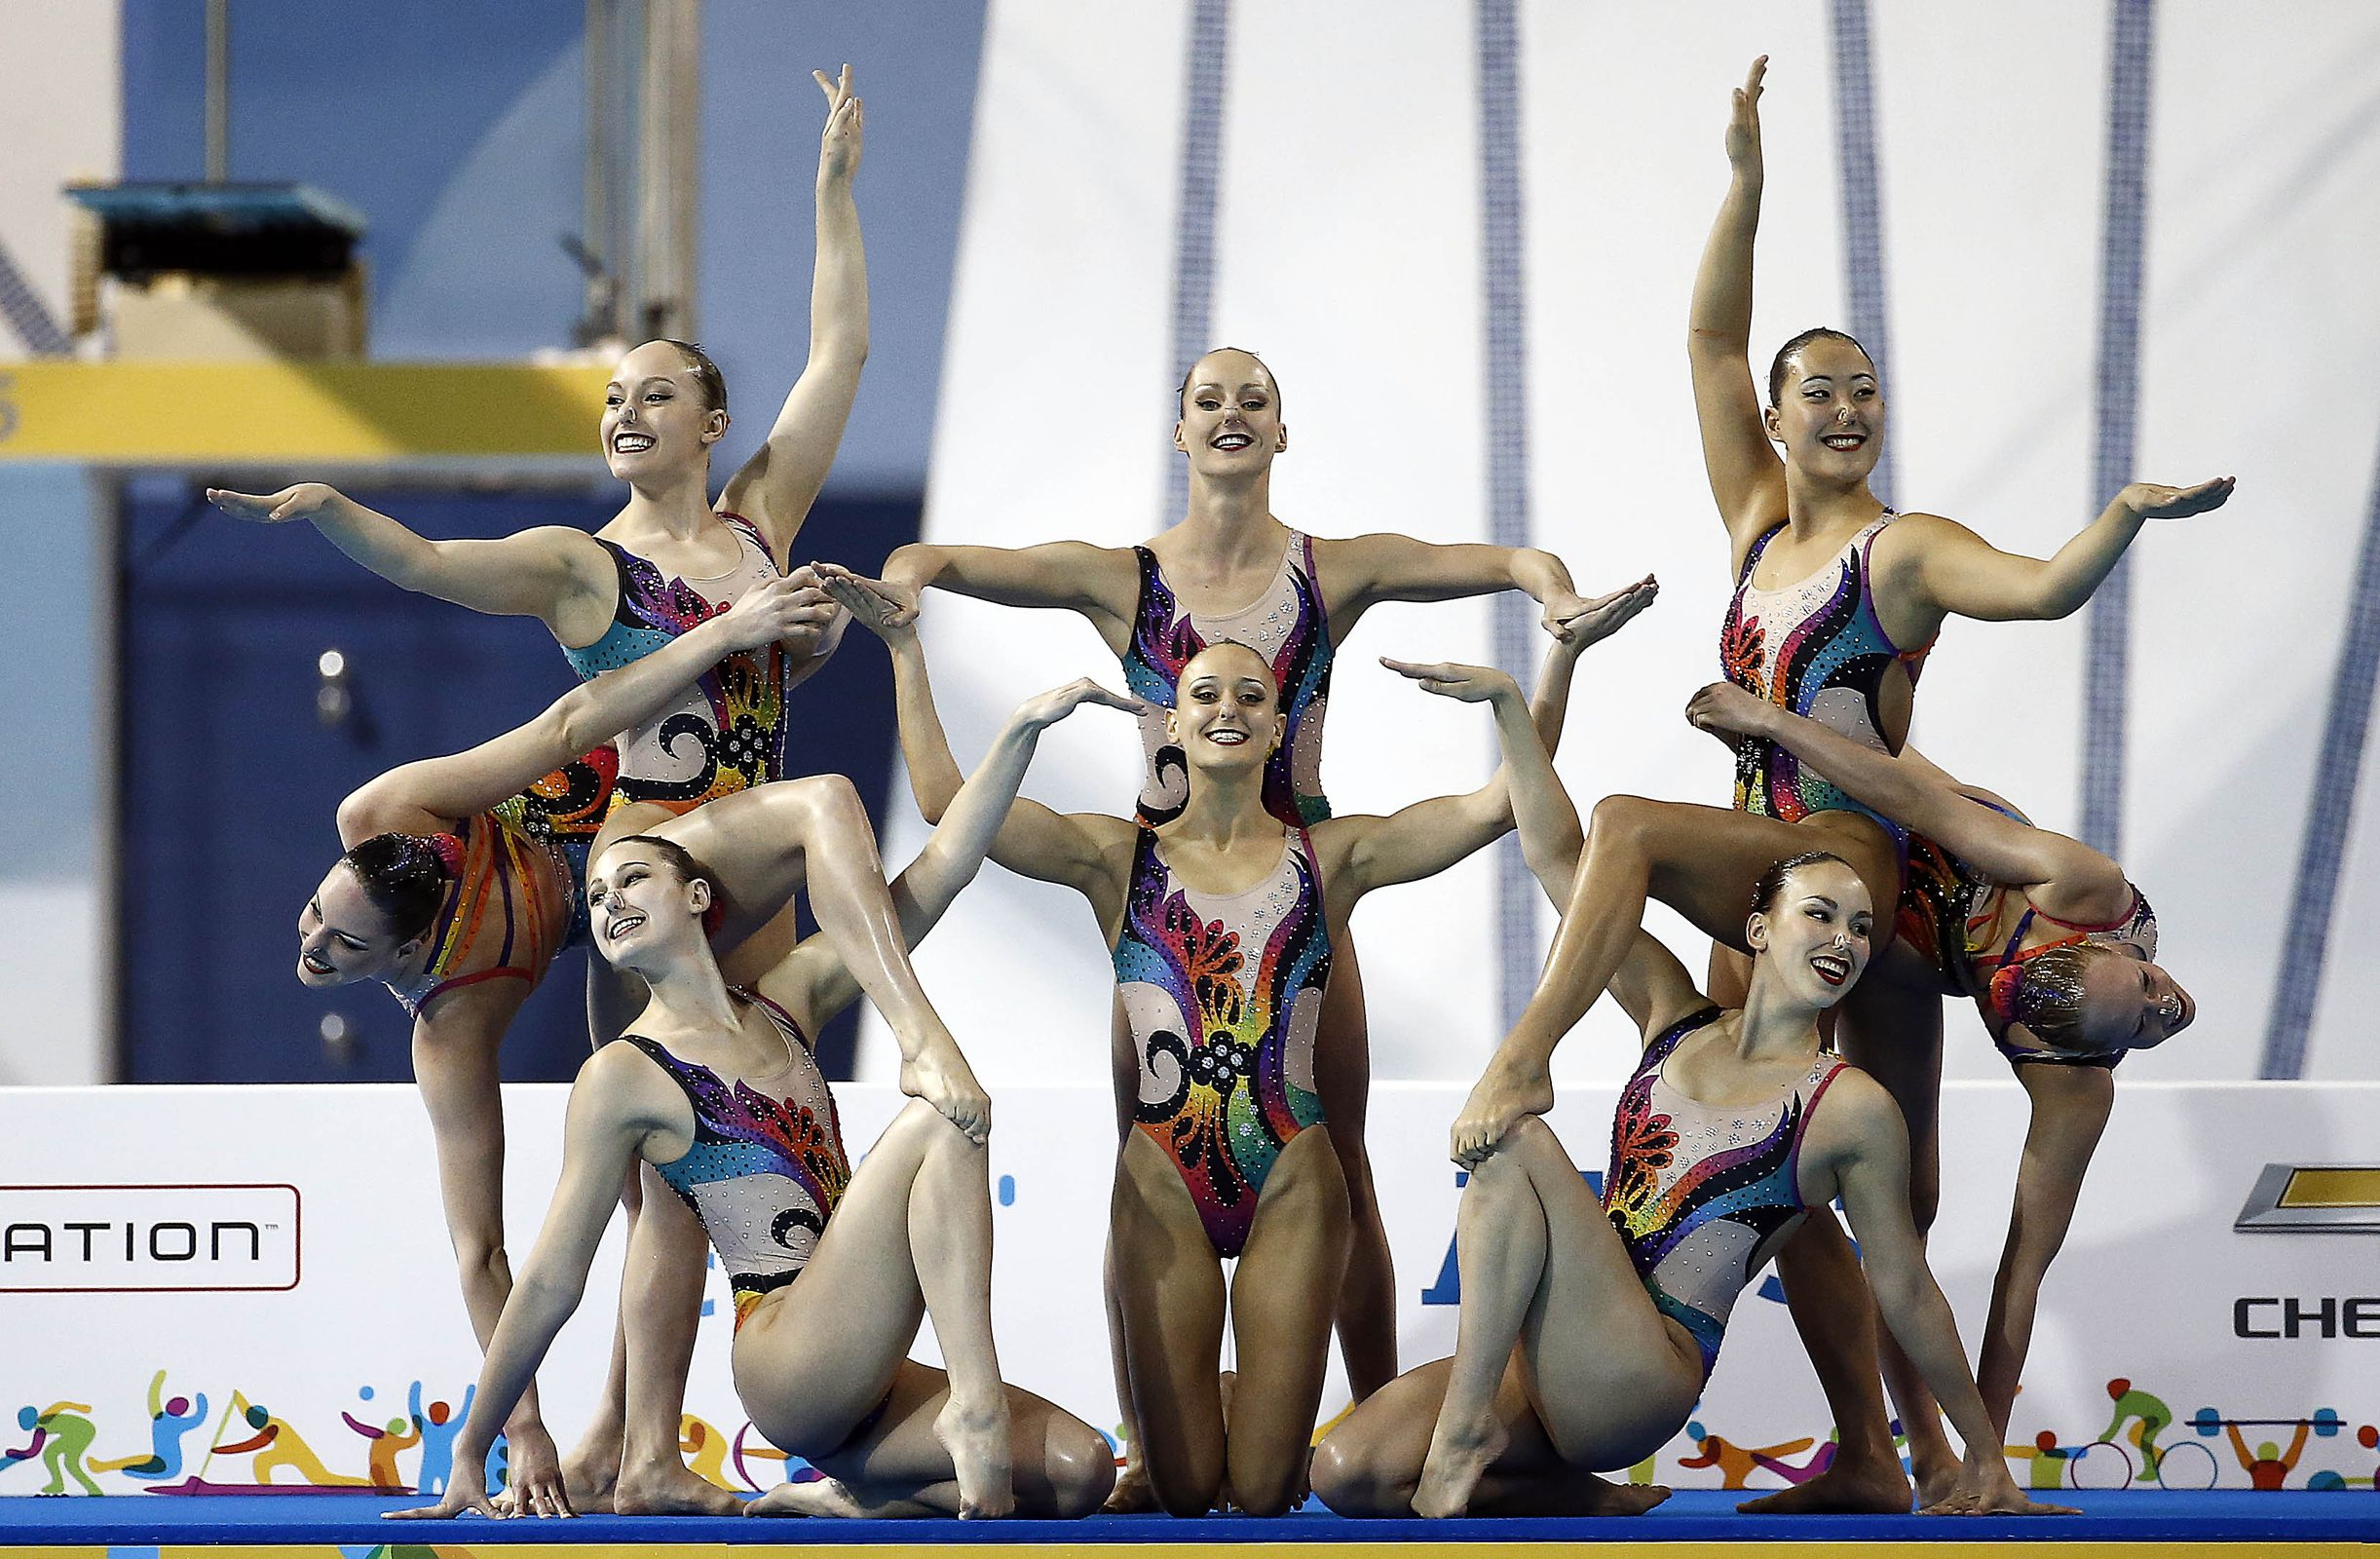 Swimming world presents the 2016 olympic preview synchronized